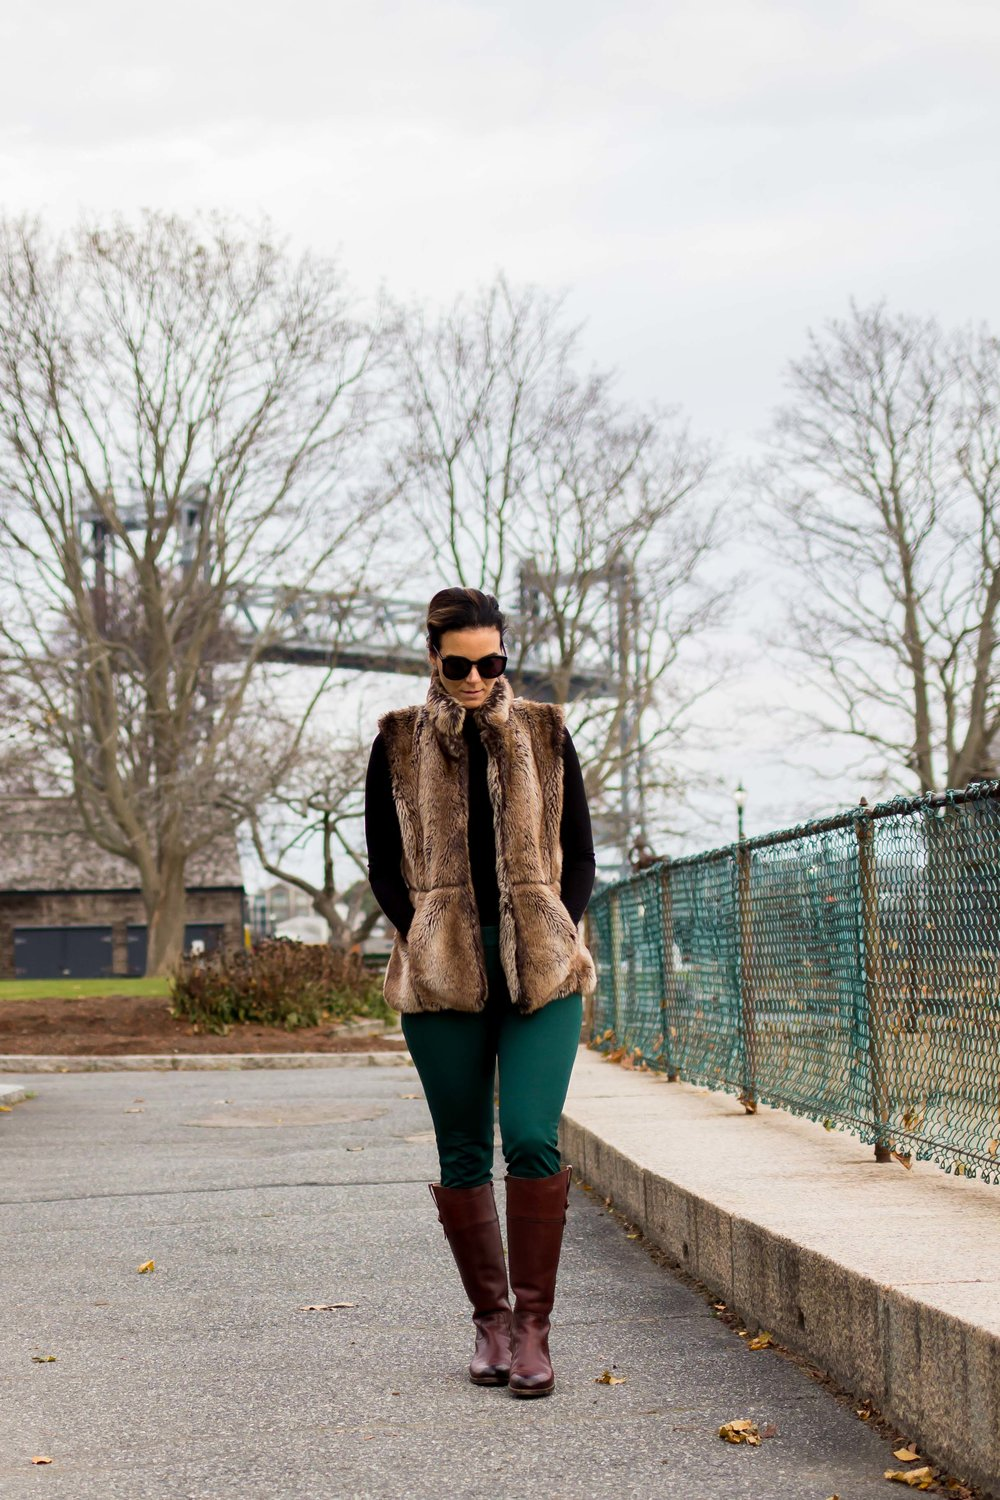 Fall Outfits – Fur Vest Outfit – Faux Fur Outfit – Casual Outfits – Frye Boots Outfit – Weekend Outfits - Fashion for Women –  heartandseam.com  #heartandseam #fryeboots #fauxfur